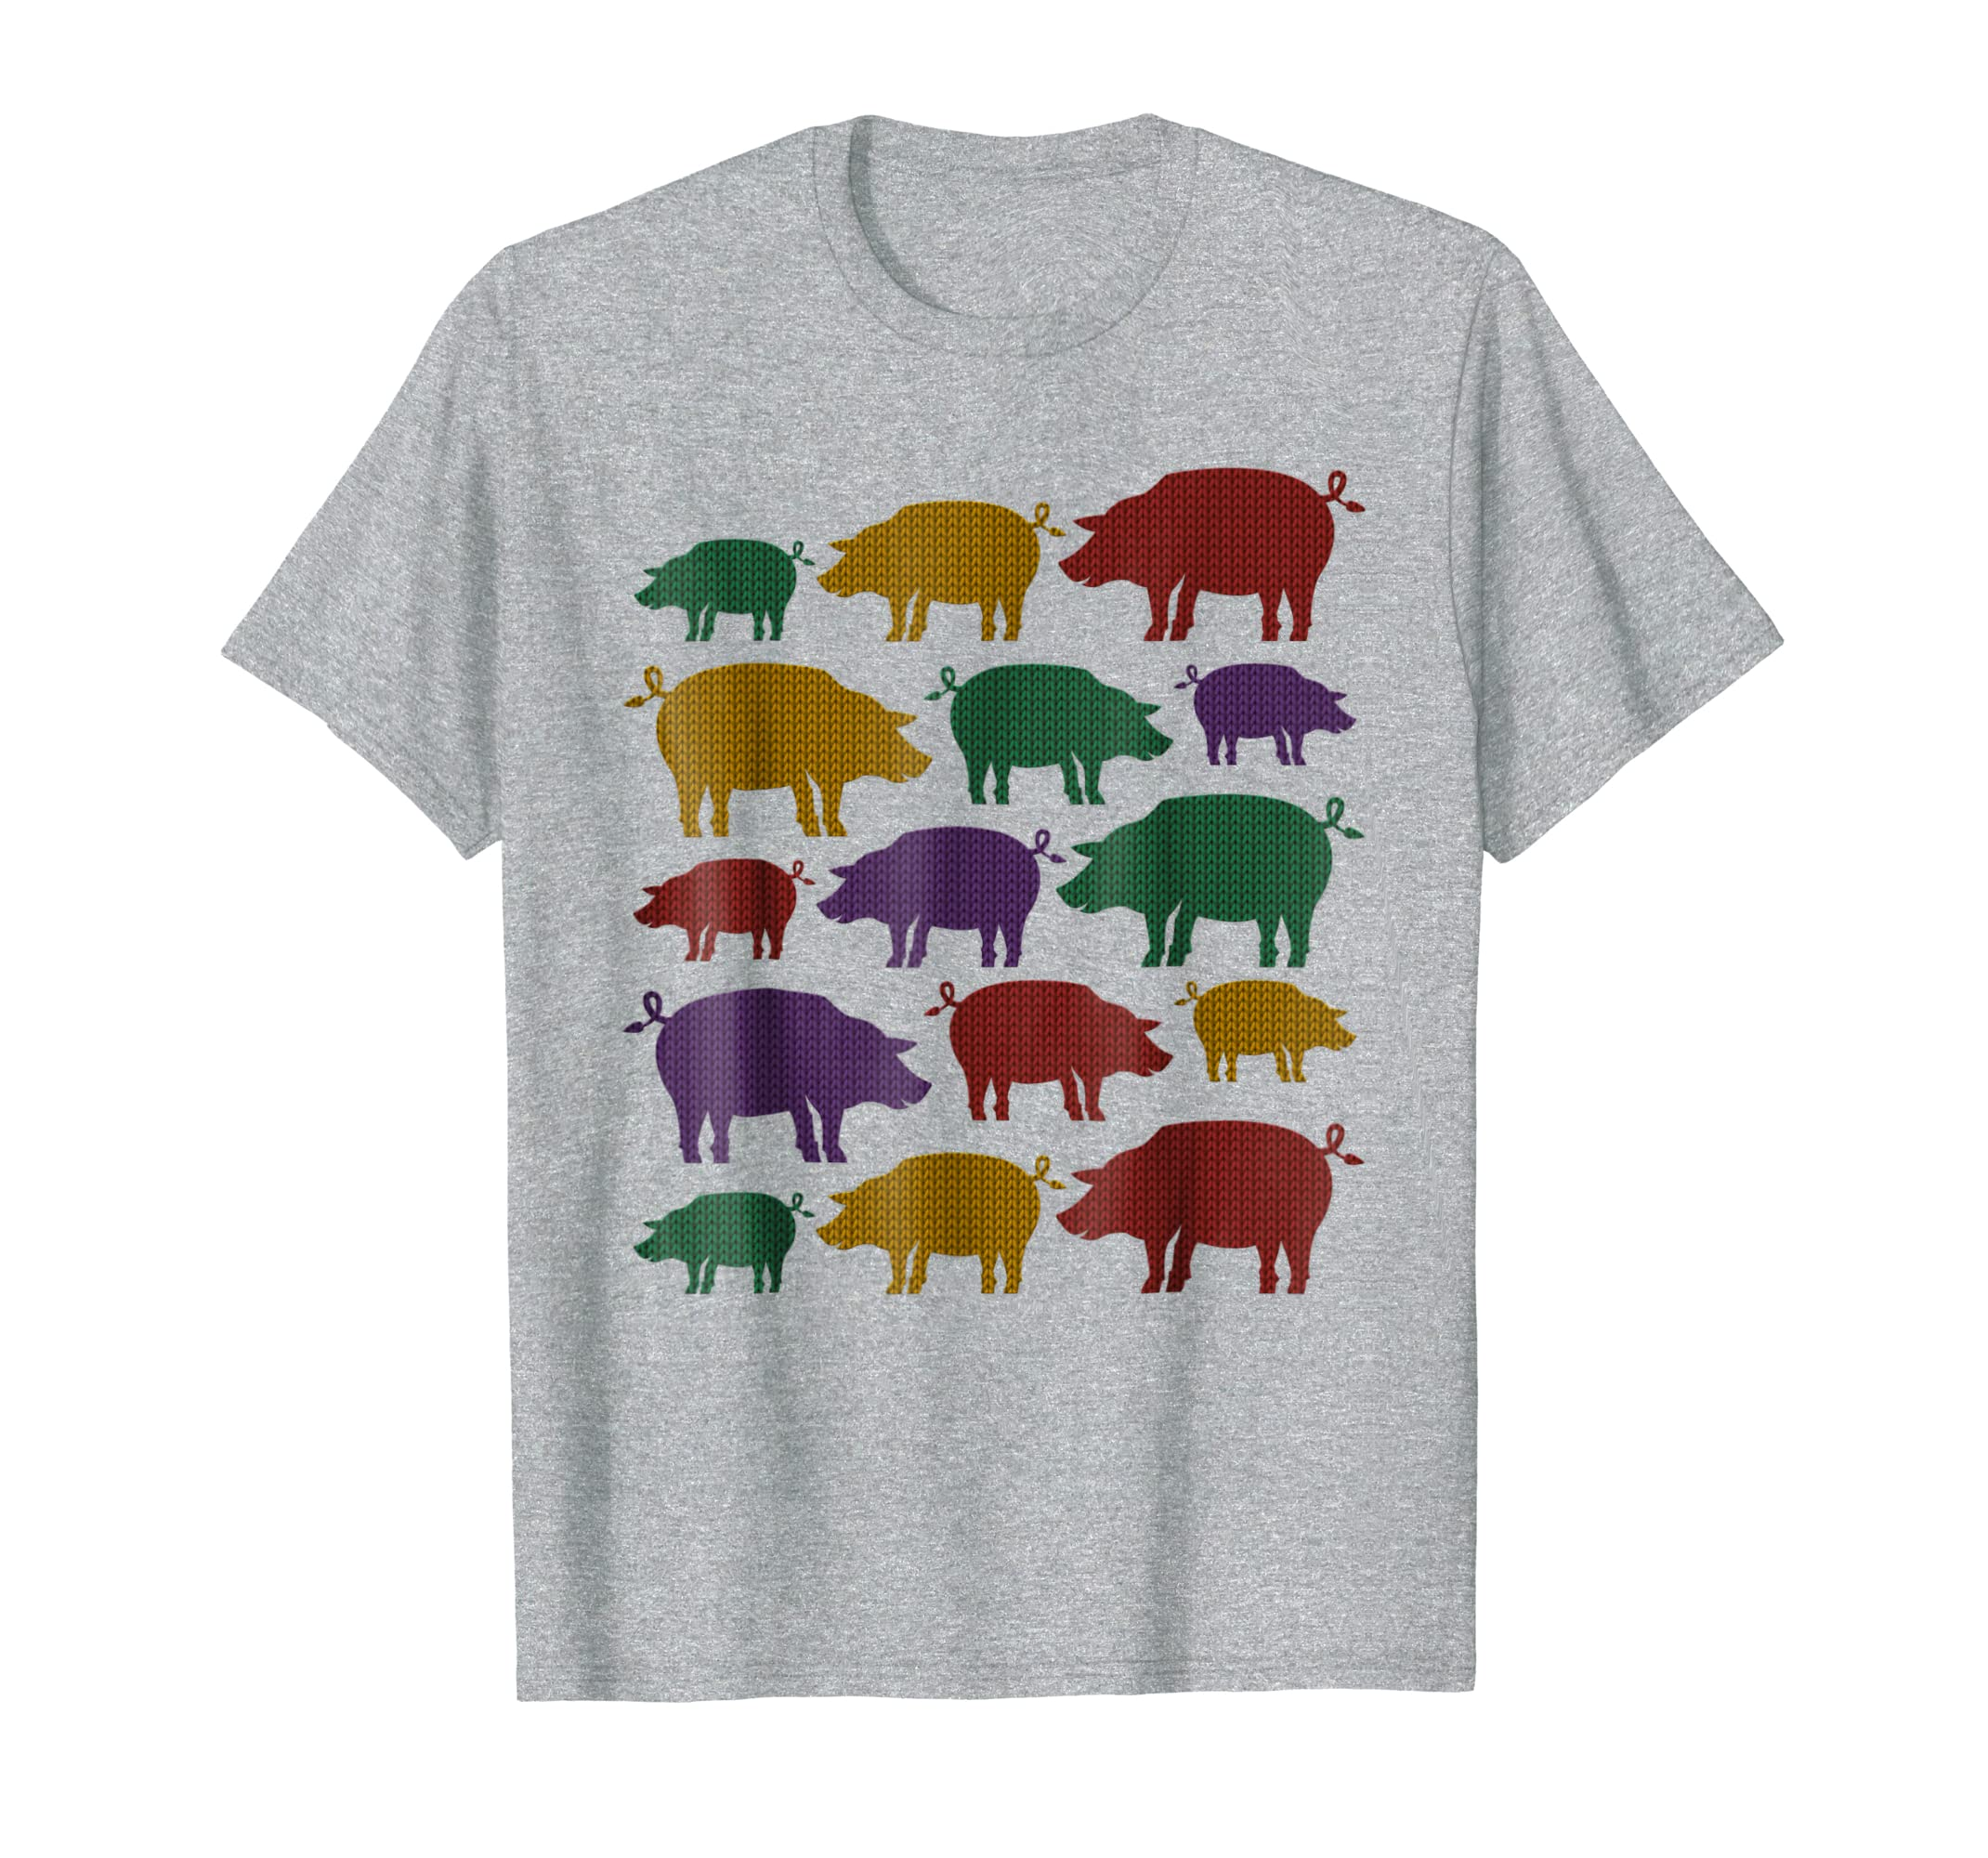 The New Year Lucky Pigs Ugly Vintage T Shirt I Xmas Gift-azvn